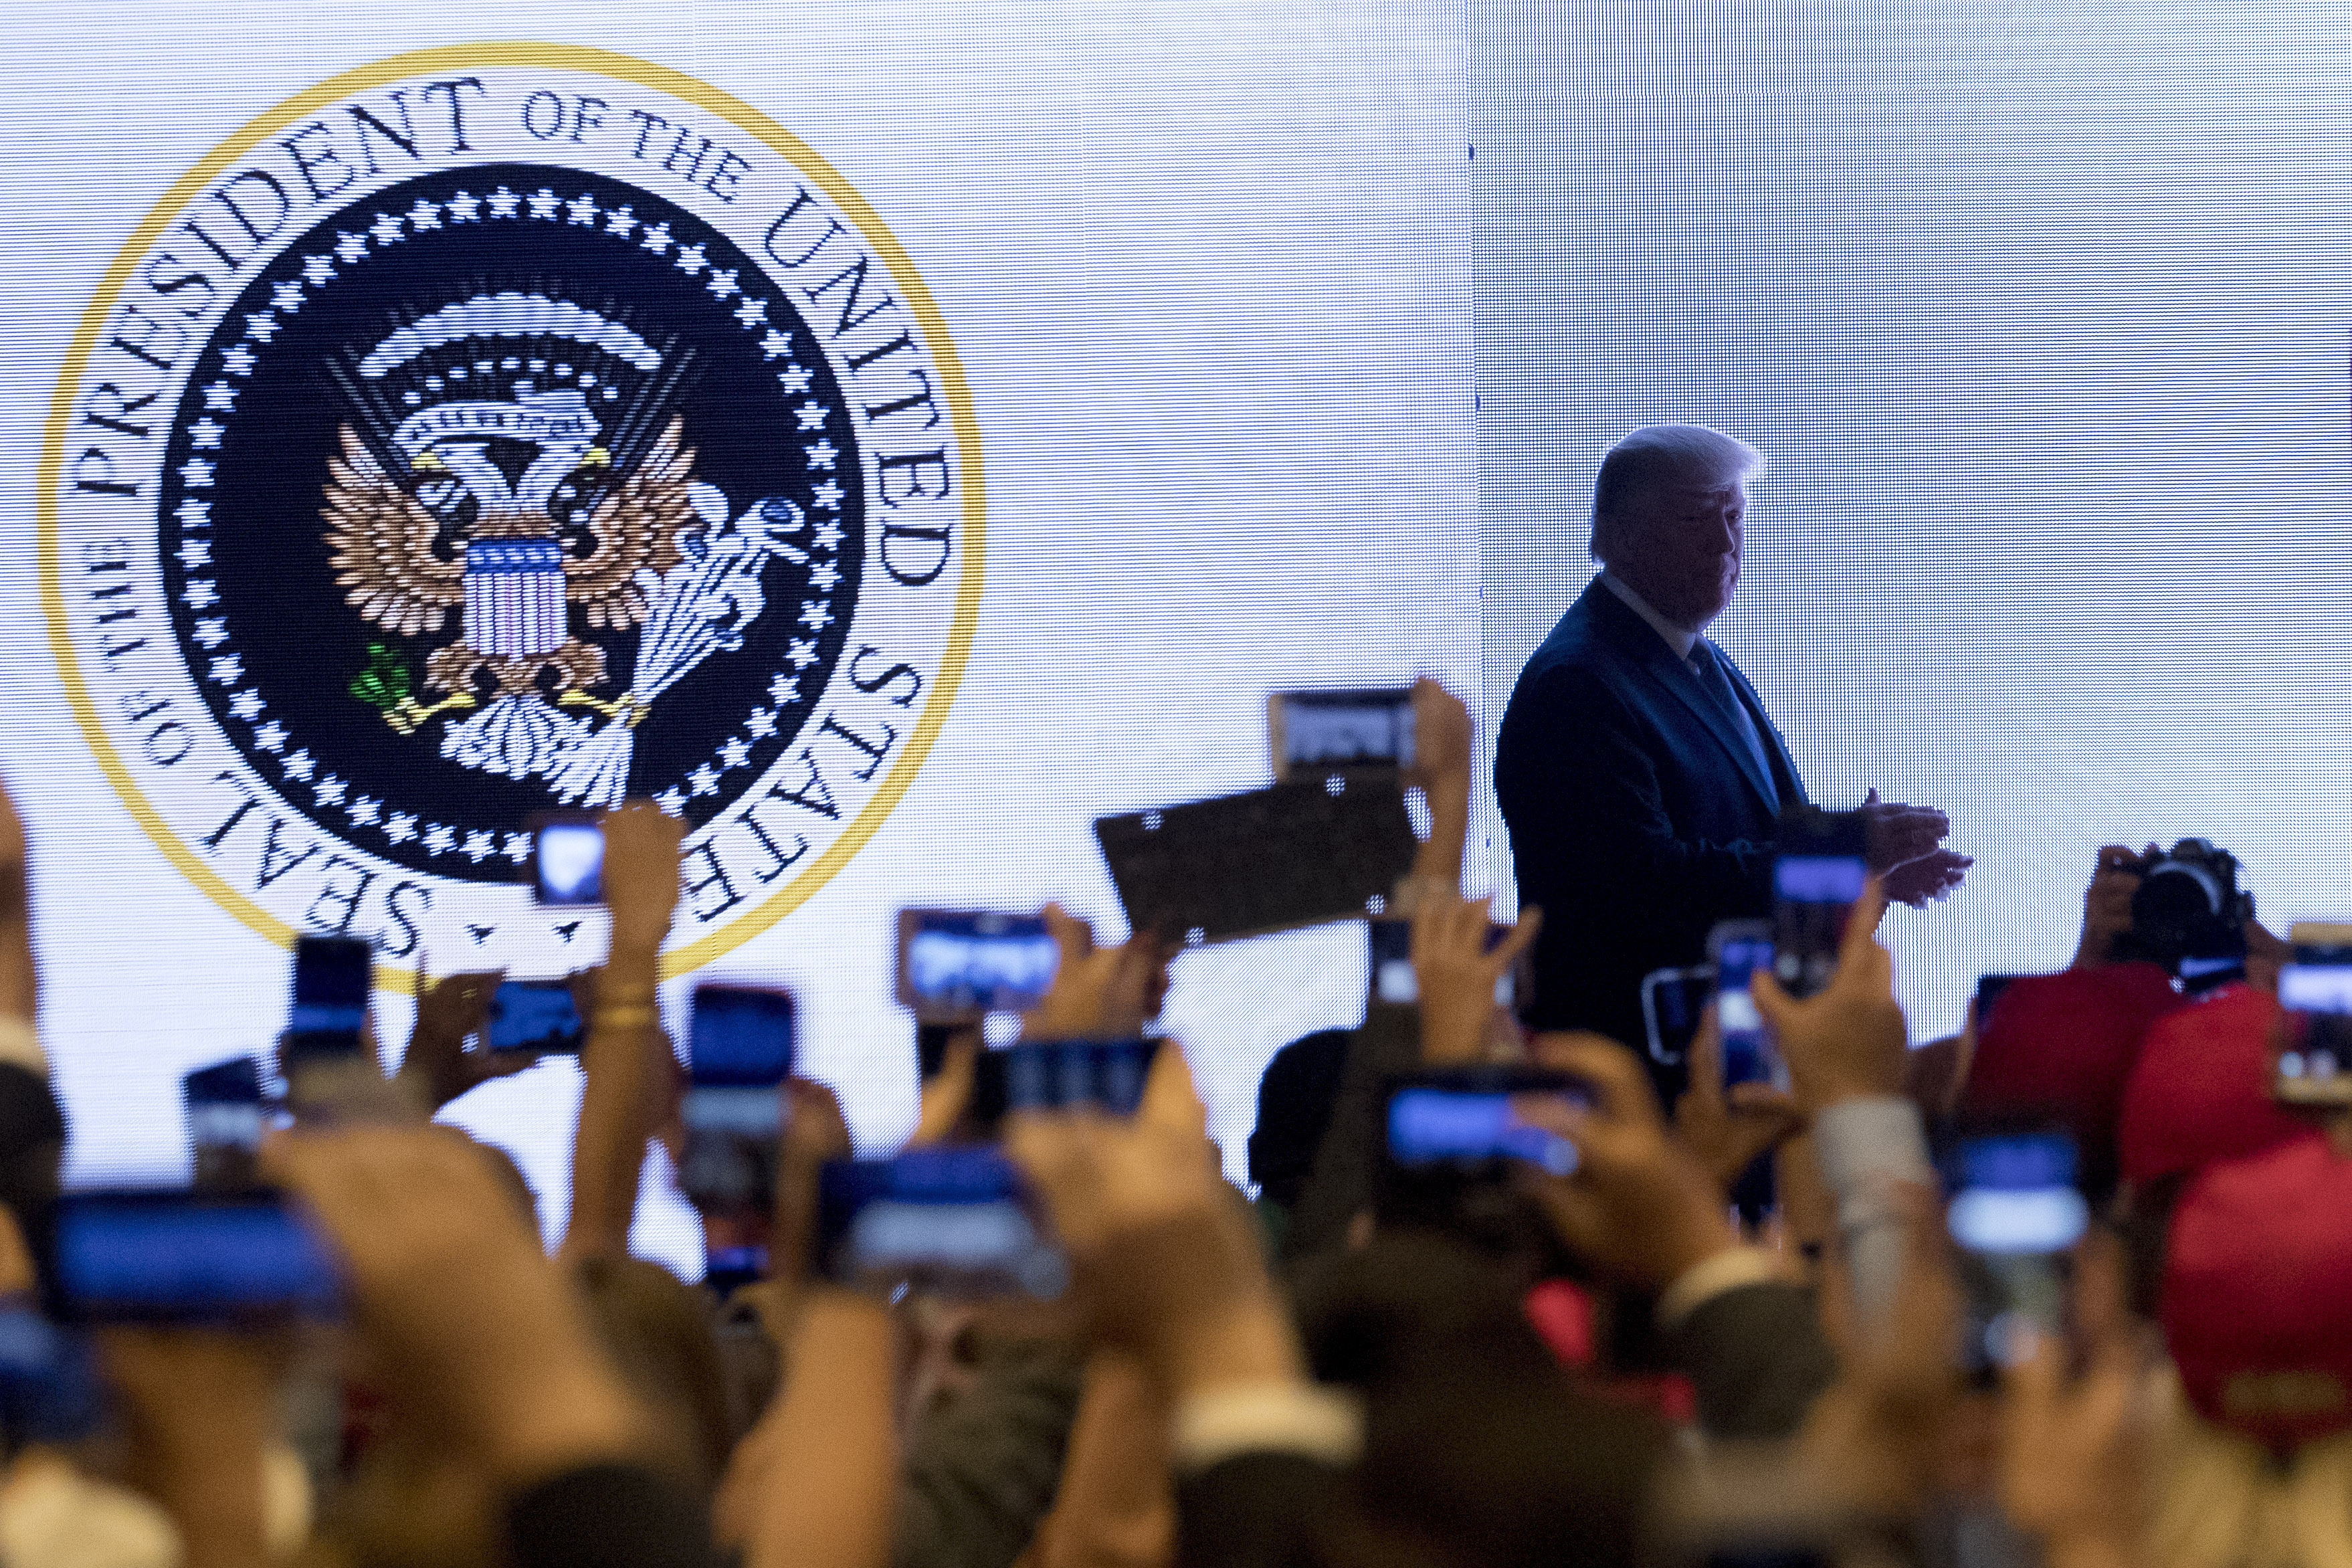 Someone Doctored The Presidential Seal Behind Trump And He Didn't Notice